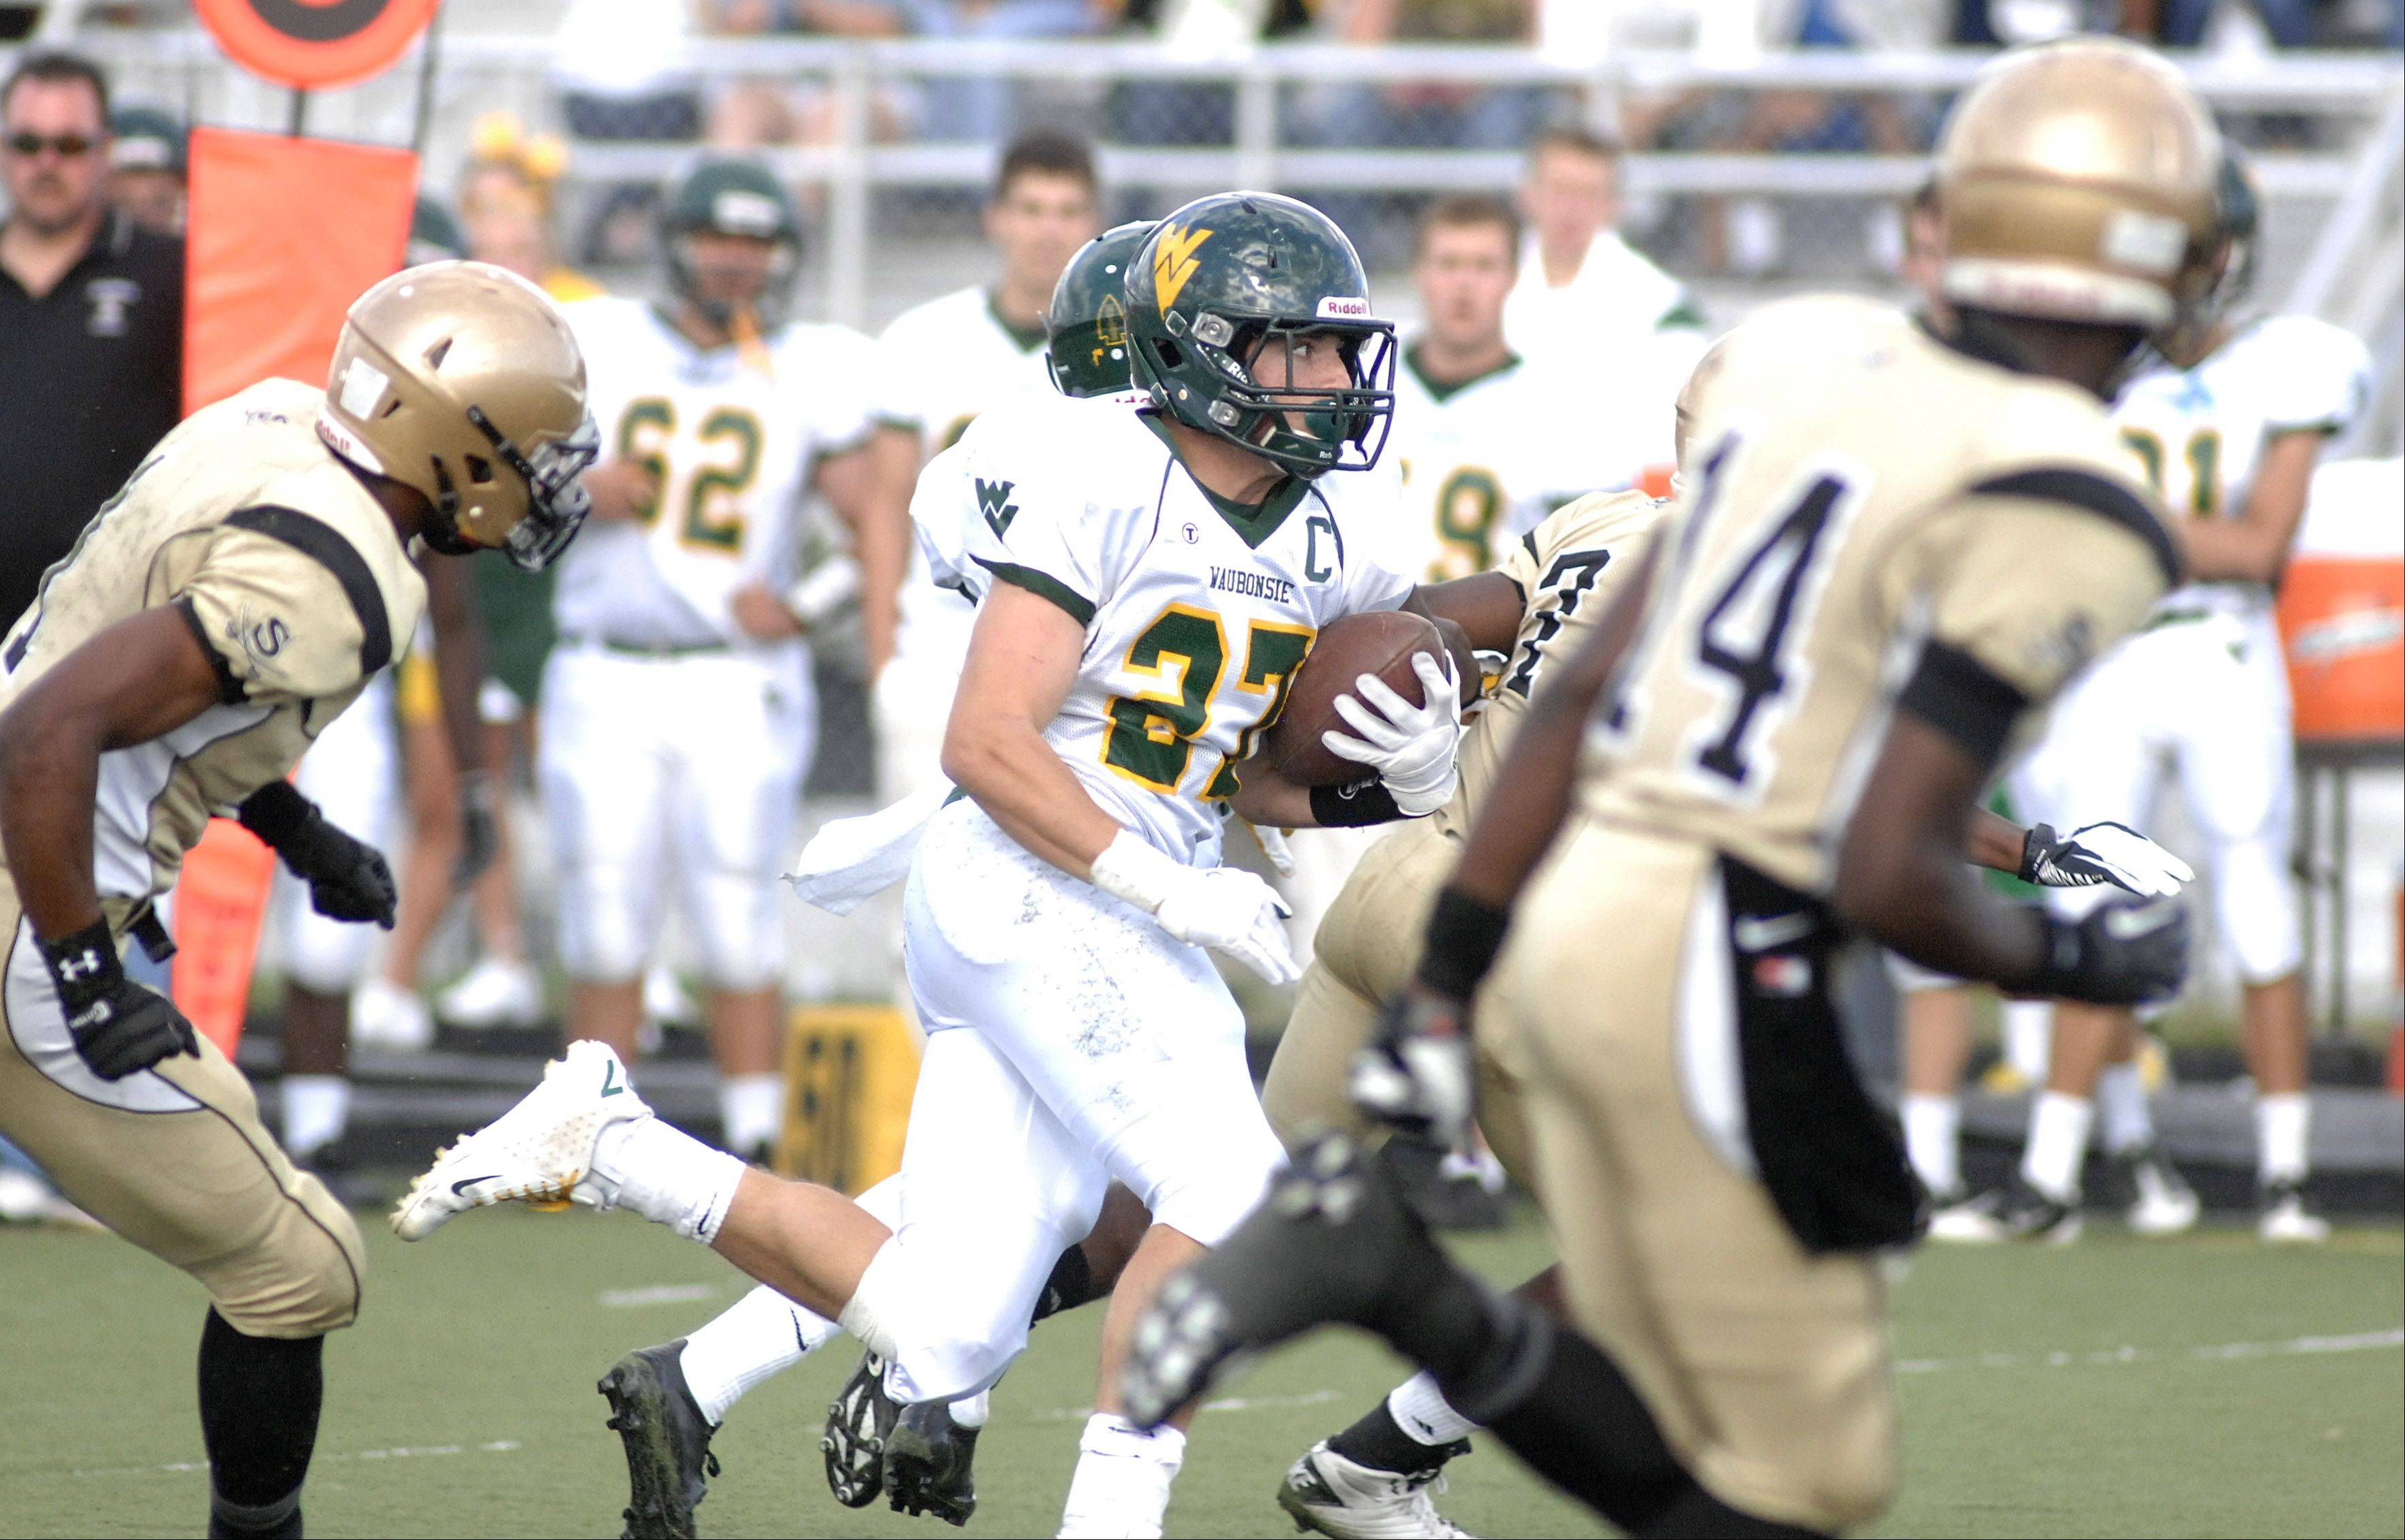 Waubonsie Valley's Austin Guido blazes through an attempted block by Streamwood to score a touchdown in the first quarter on Saturday, September 8.